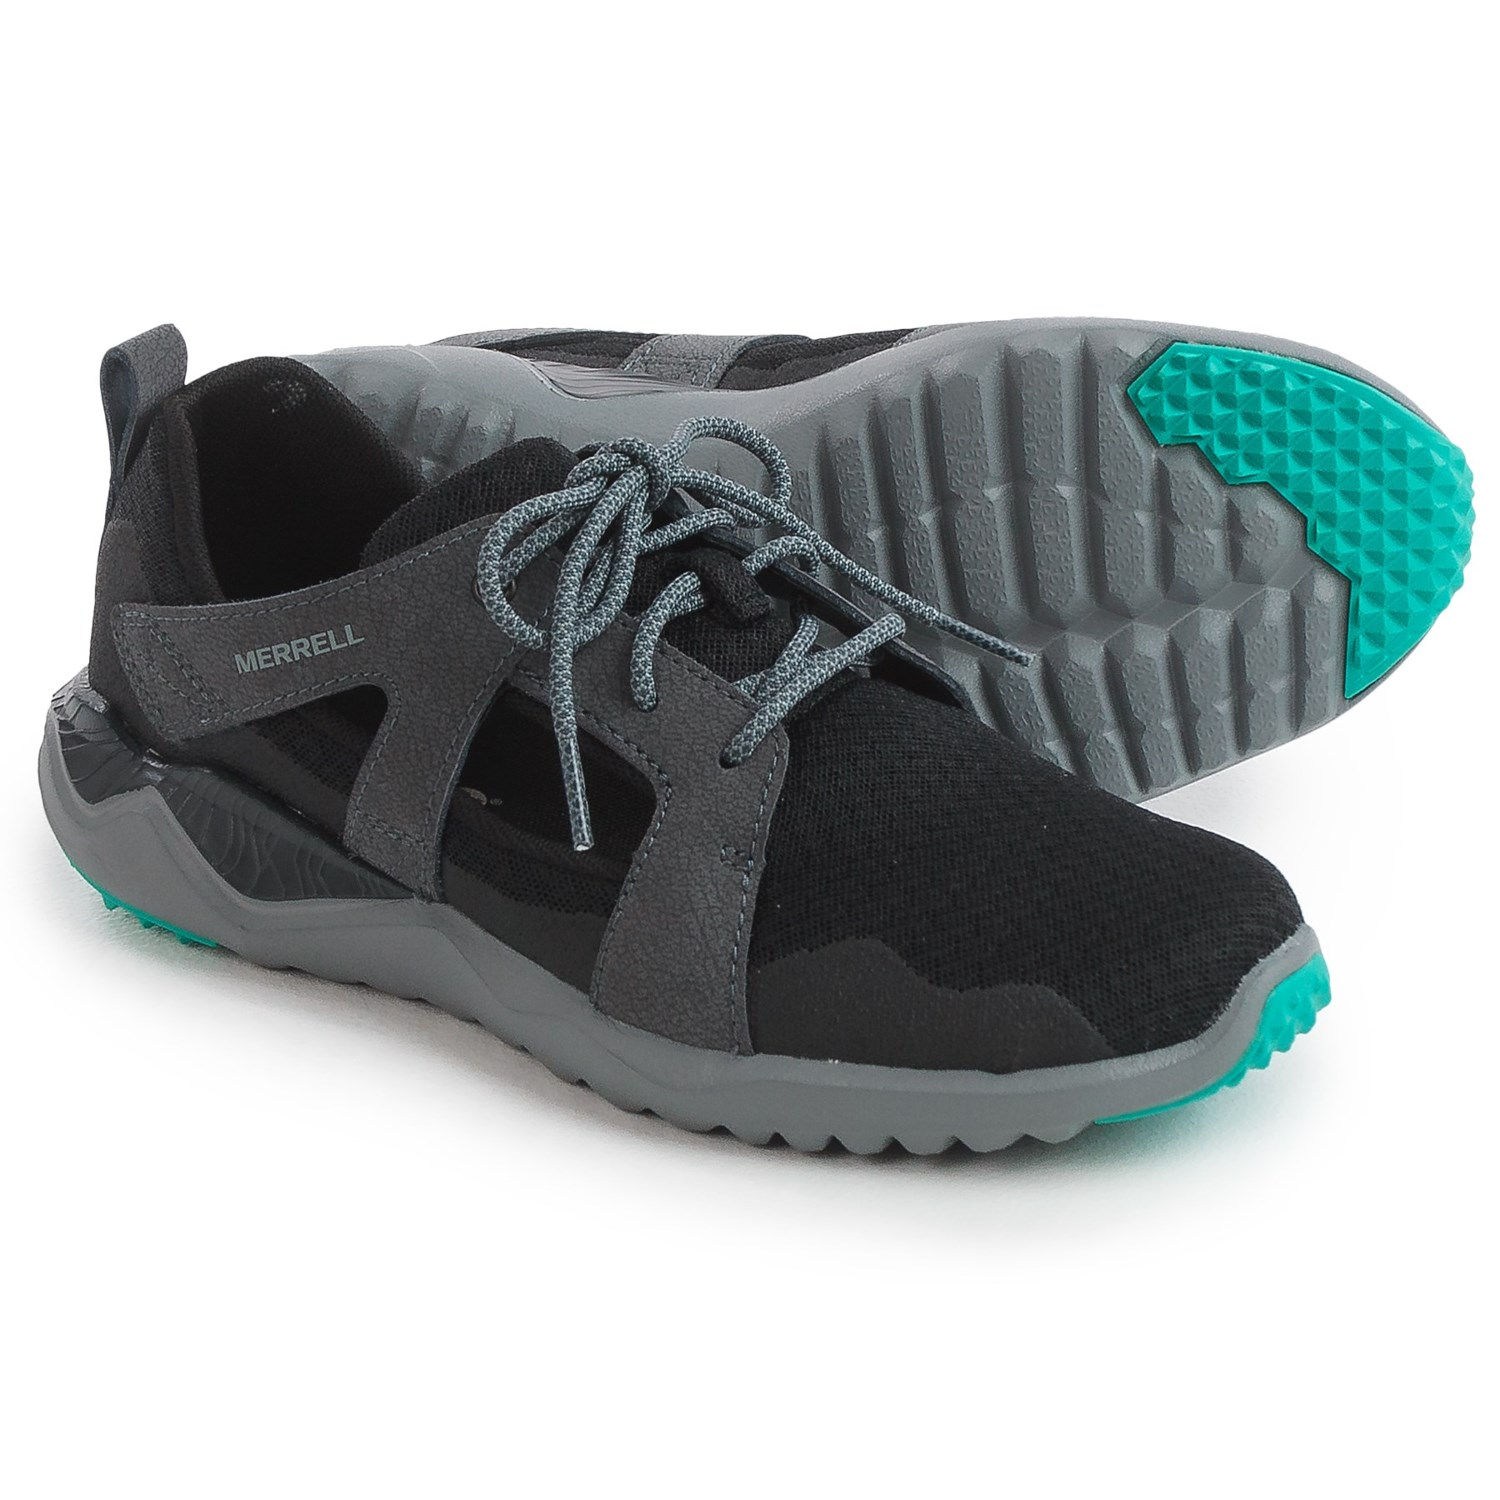 Merrell 1SIX8 Slice Lace Shoes (For Women) in Black